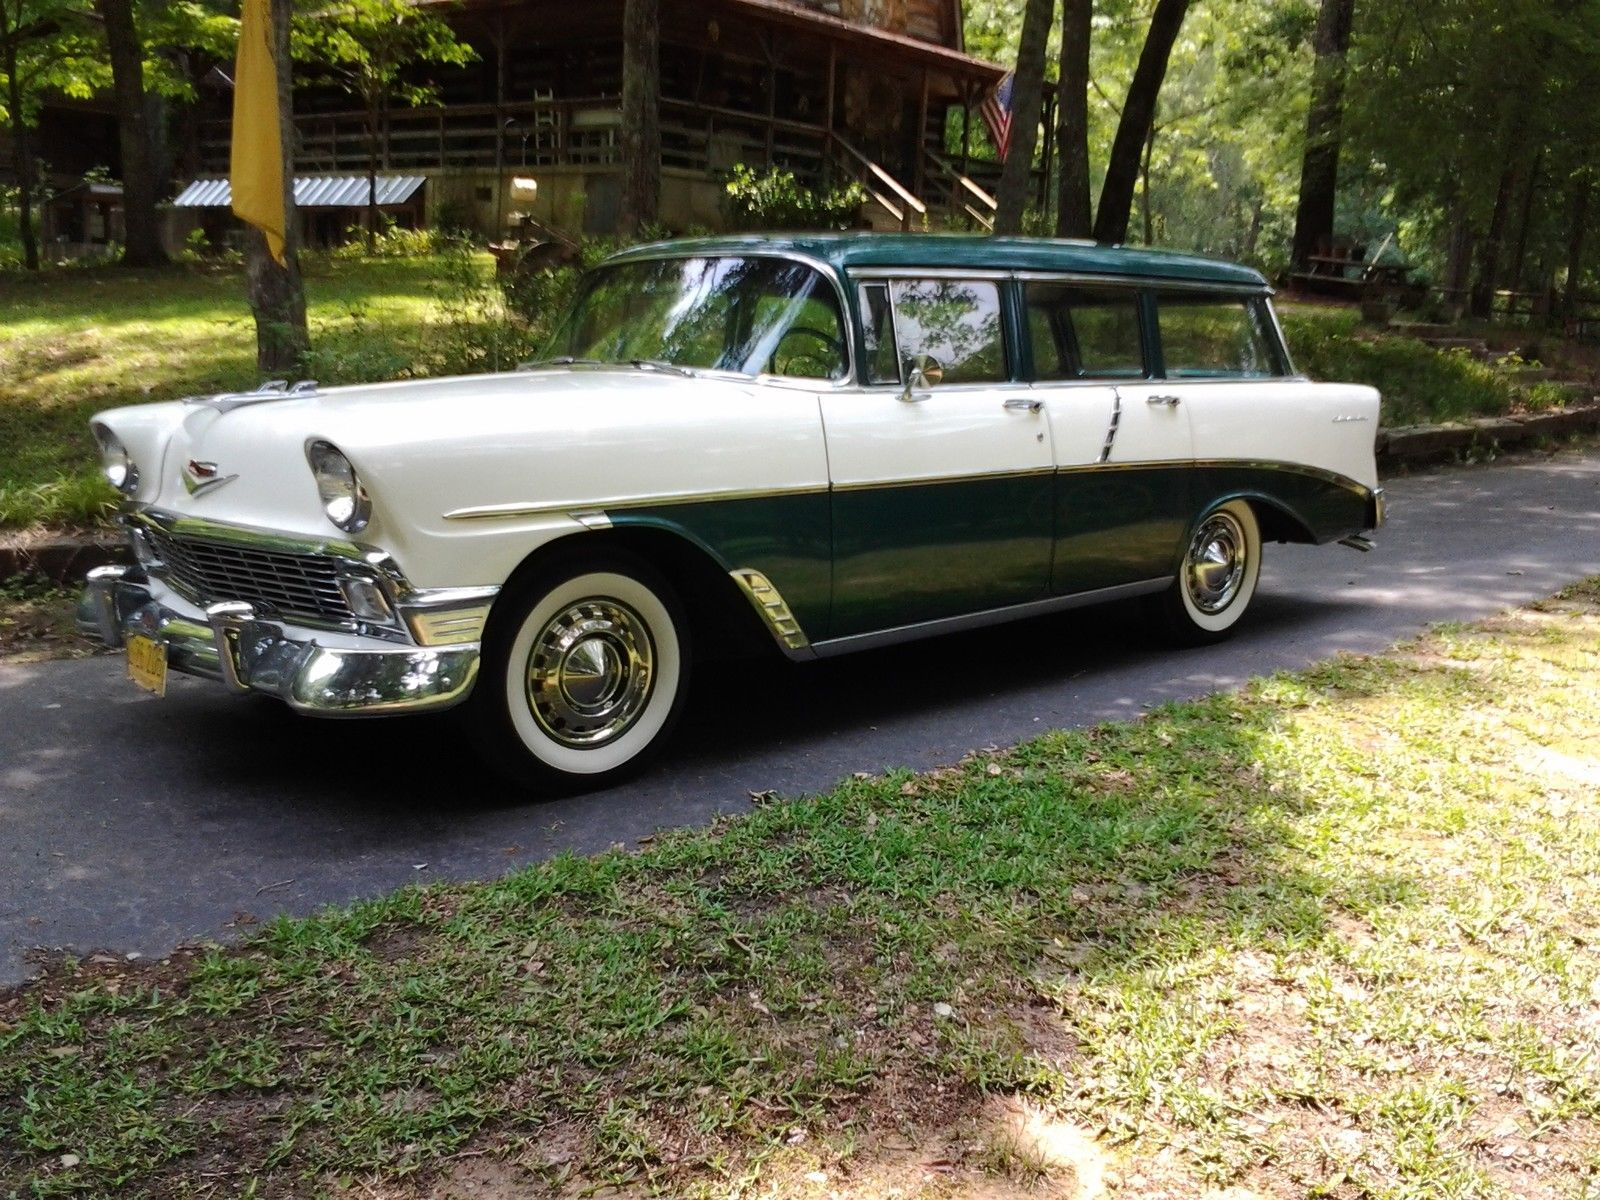 Chevrolet Bel Air 150 210 Wagon 4 Door Chevy Nomads And Wagons 1957 Station 56 Beach